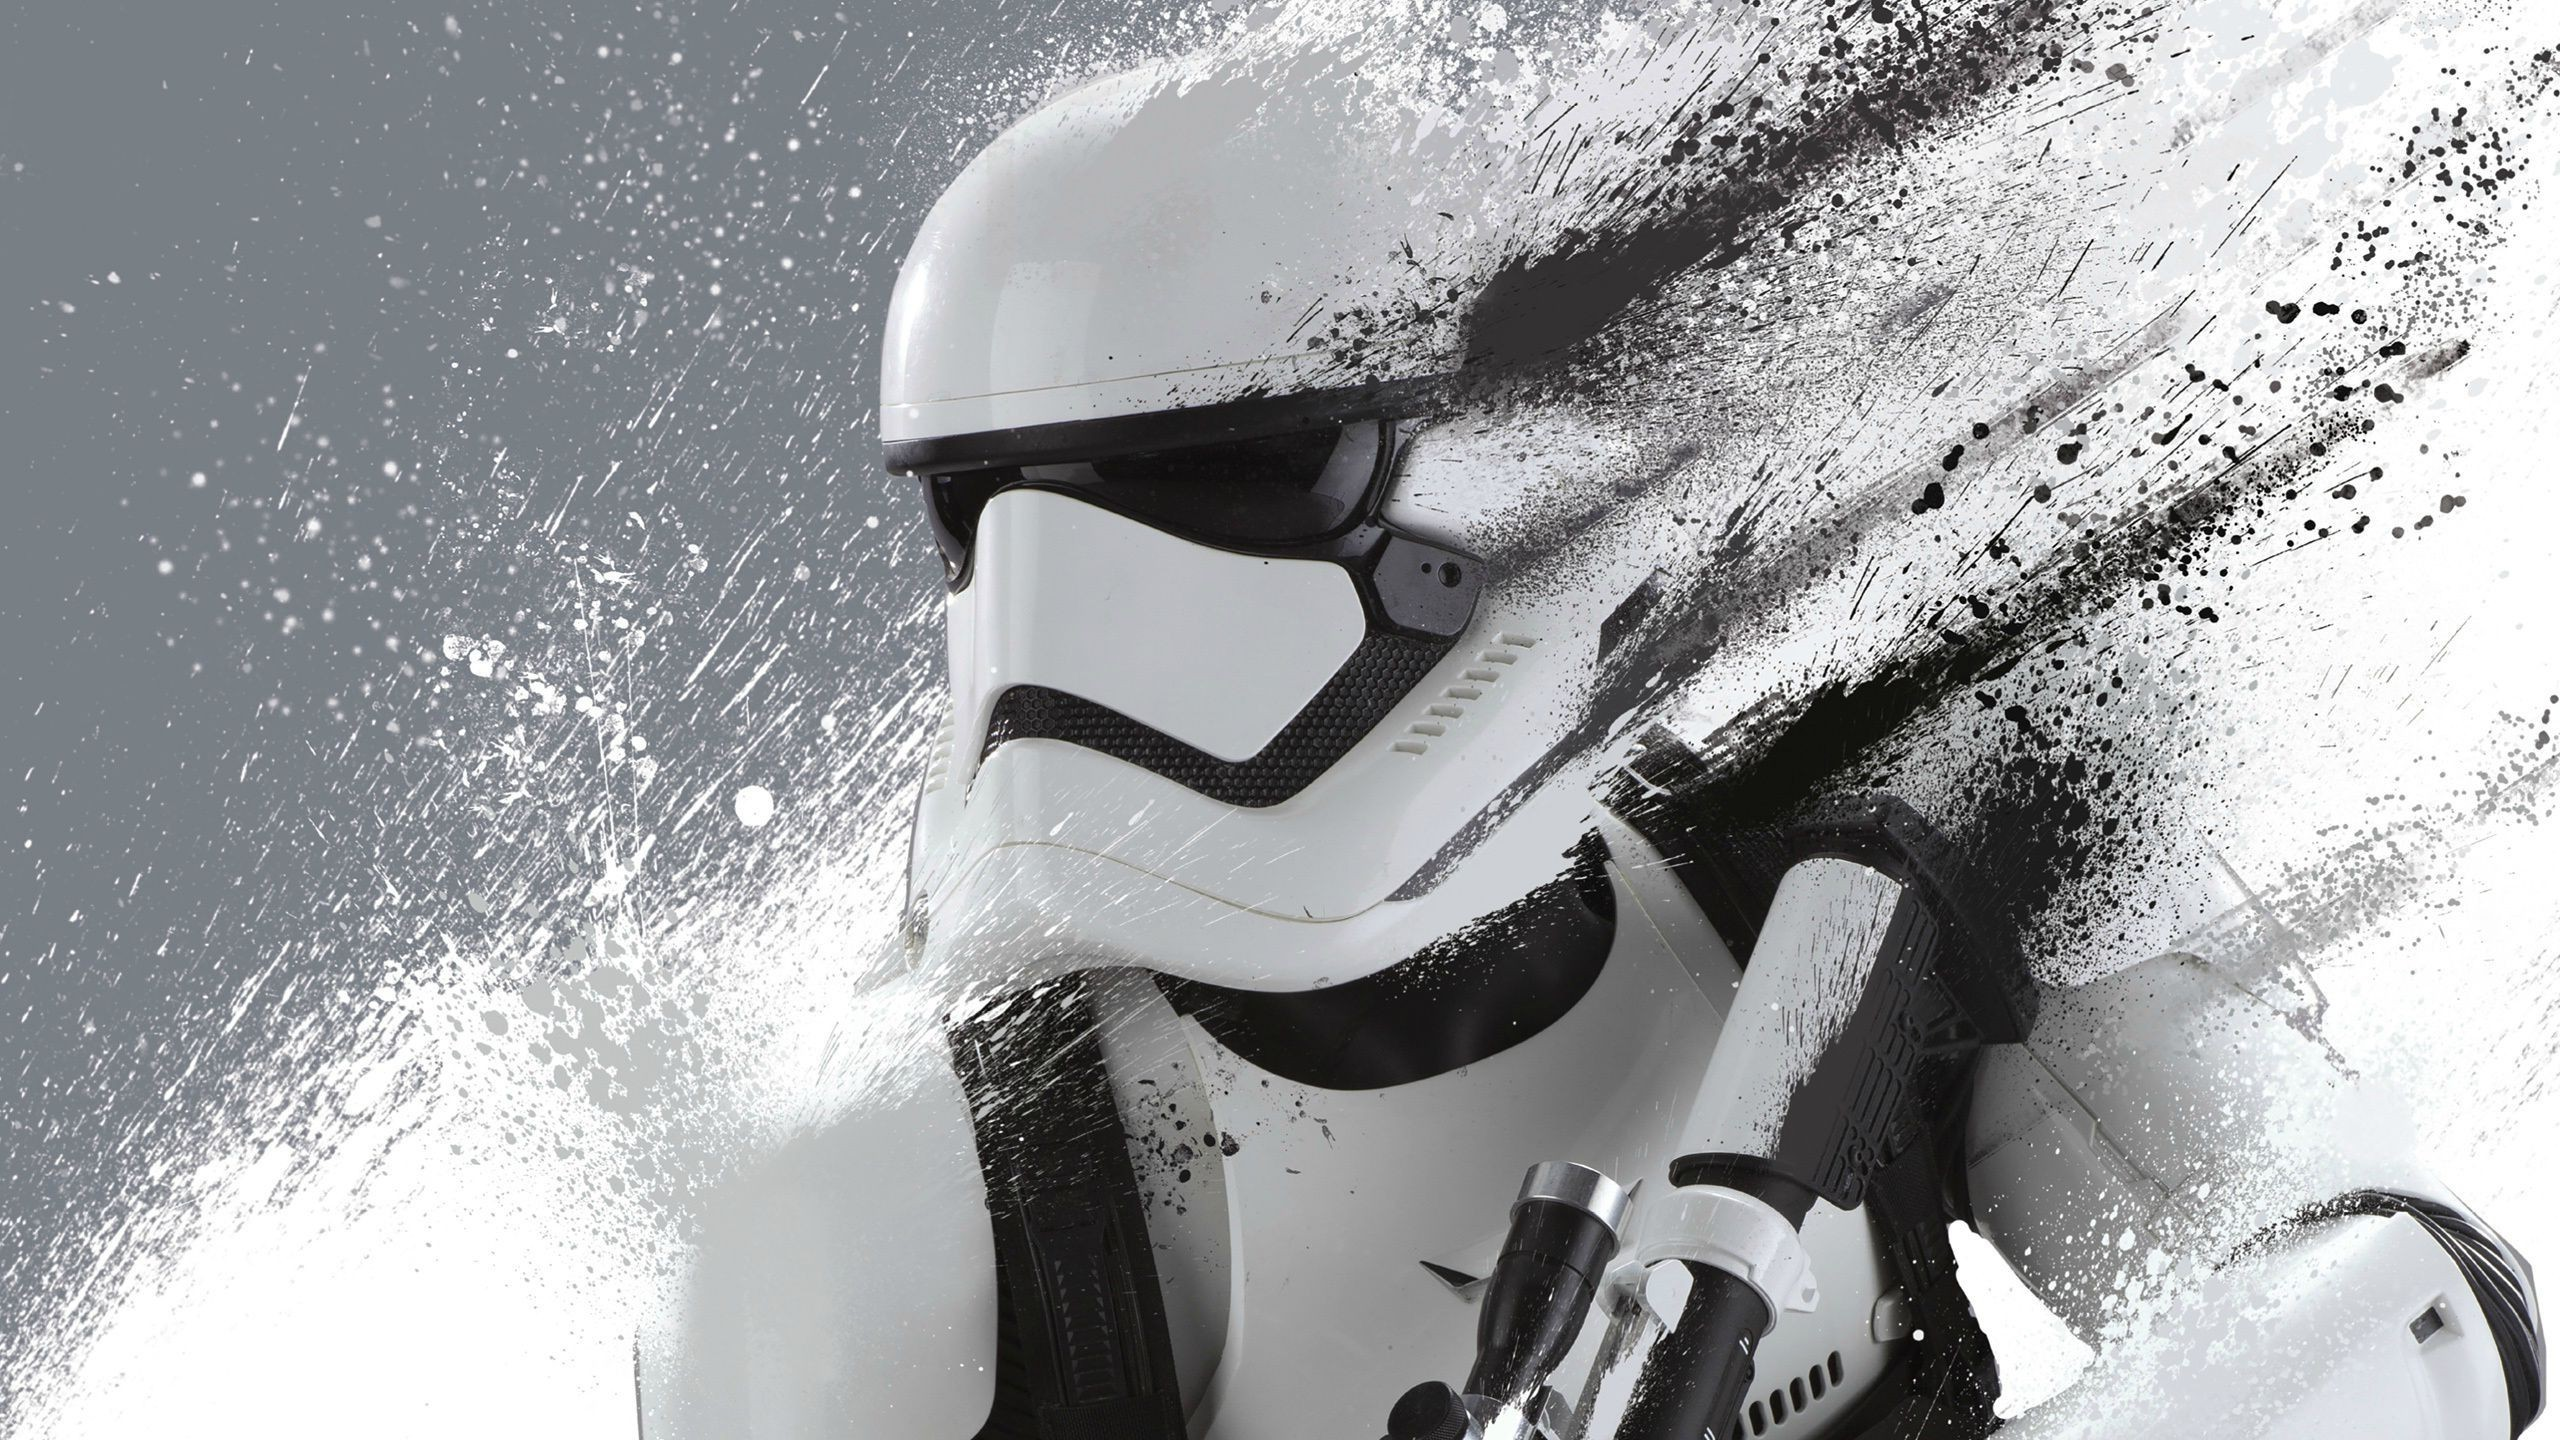 Star Wars, Storm Troopers, First Order, Star Wars: Episode VII The Force  Awakens Wallpapers HD / Desktop and Mobile Backgrounds